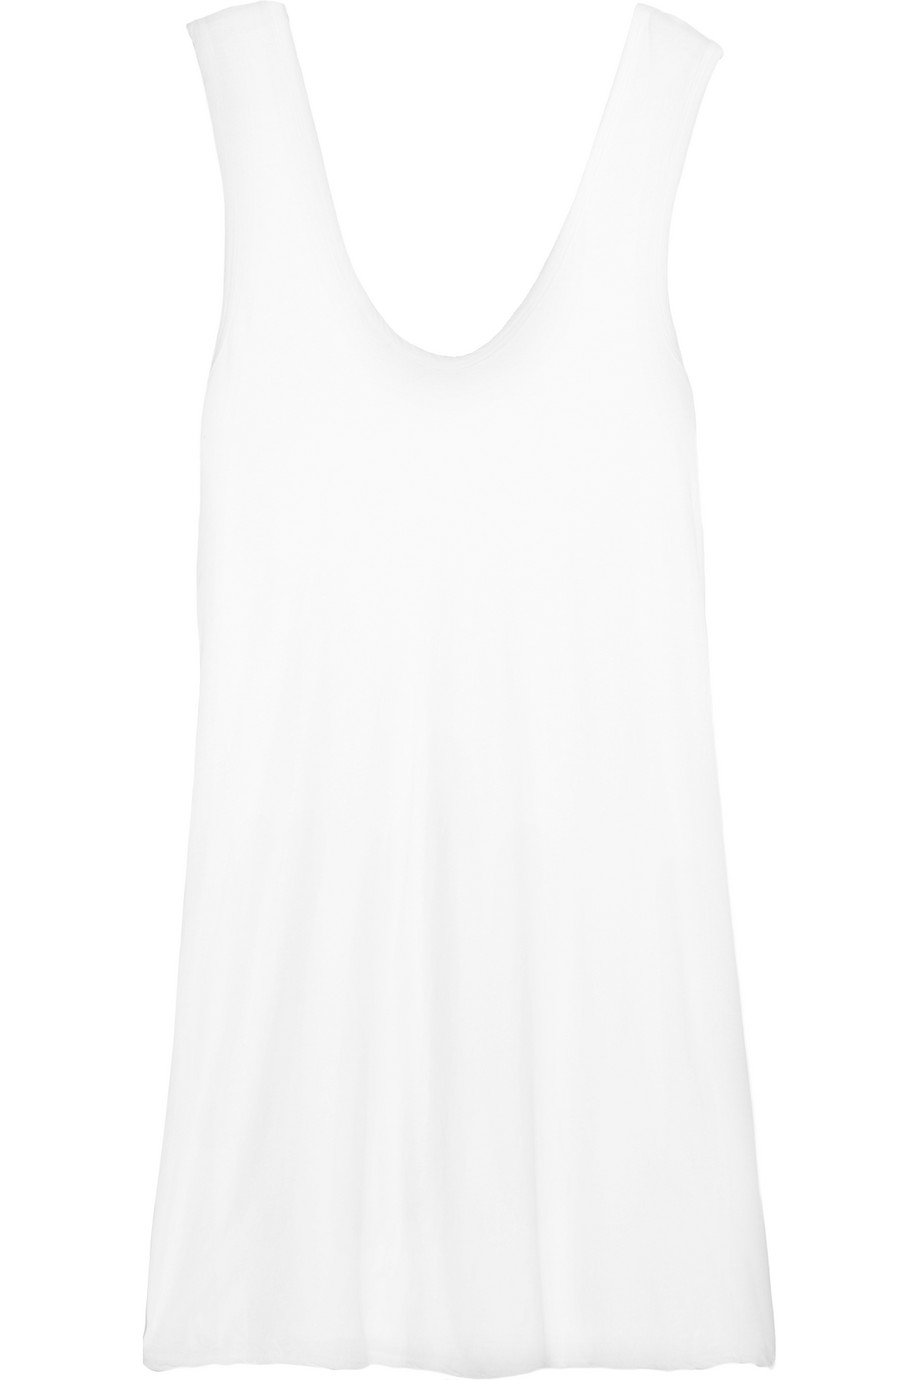 James Perse Cotton-Jersey Mini Dress, White, Women's, Size: 2